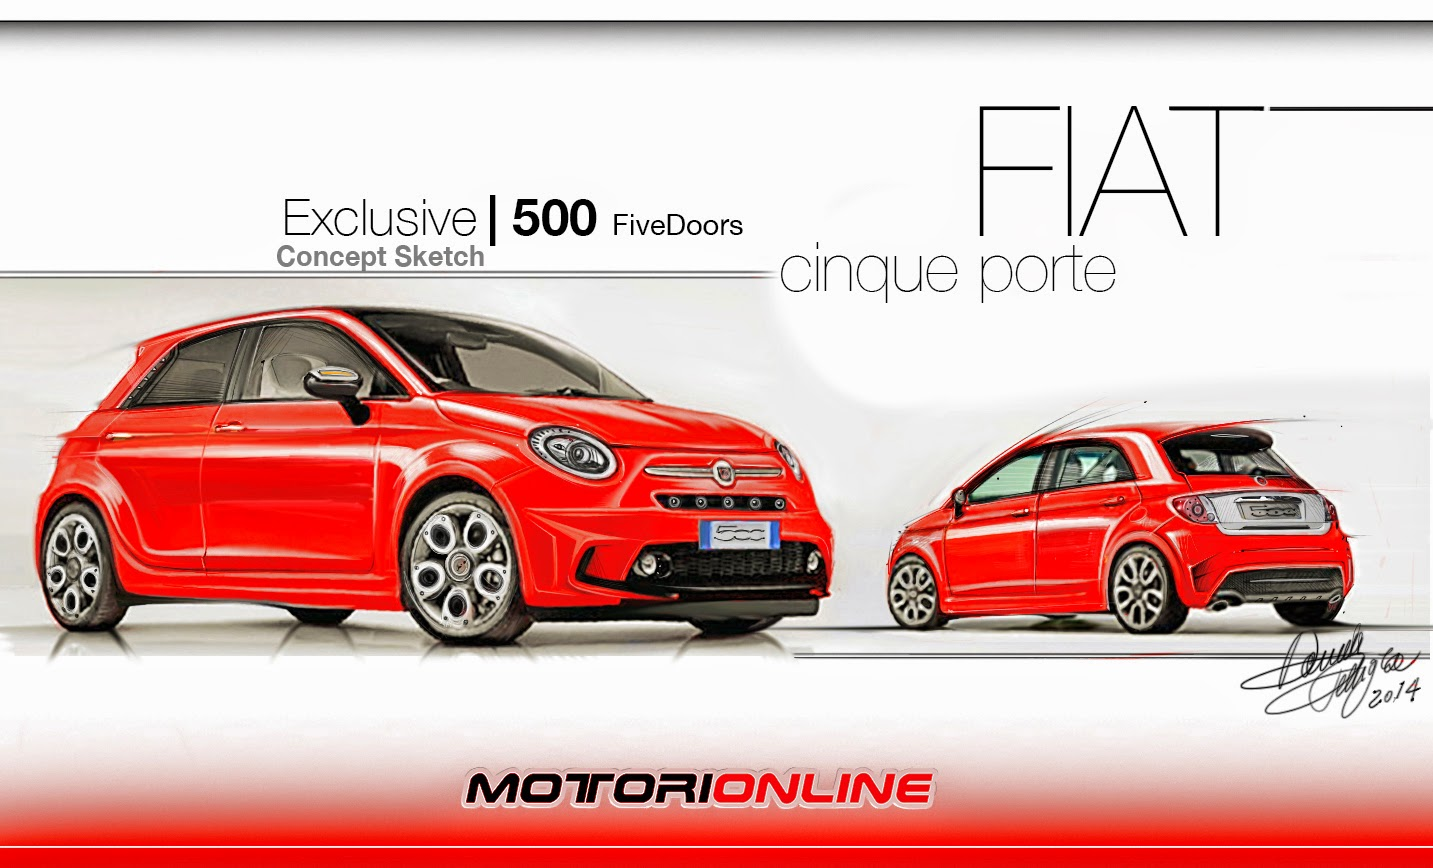 fiat 500 5 porte bozzetto esclusivo di un cinquino per famiglie. Black Bedroom Furniture Sets. Home Design Ideas